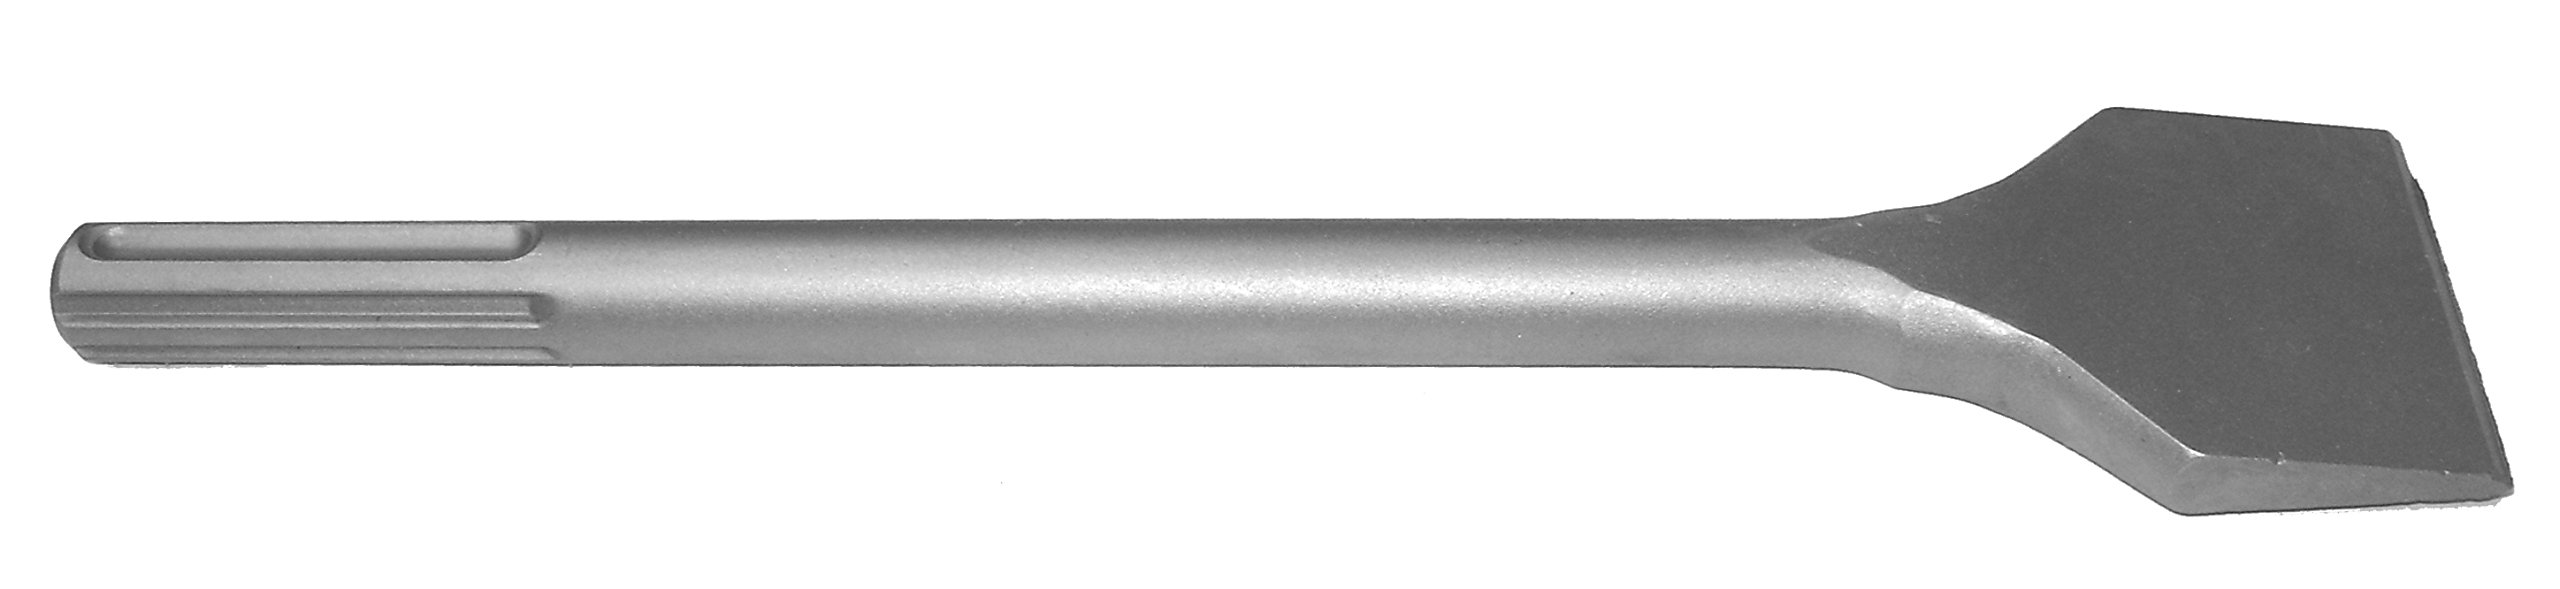 Champion Chisel, SDS-MAX Shank 16-Inch Long by 3-Inch Wide Flat Chisel